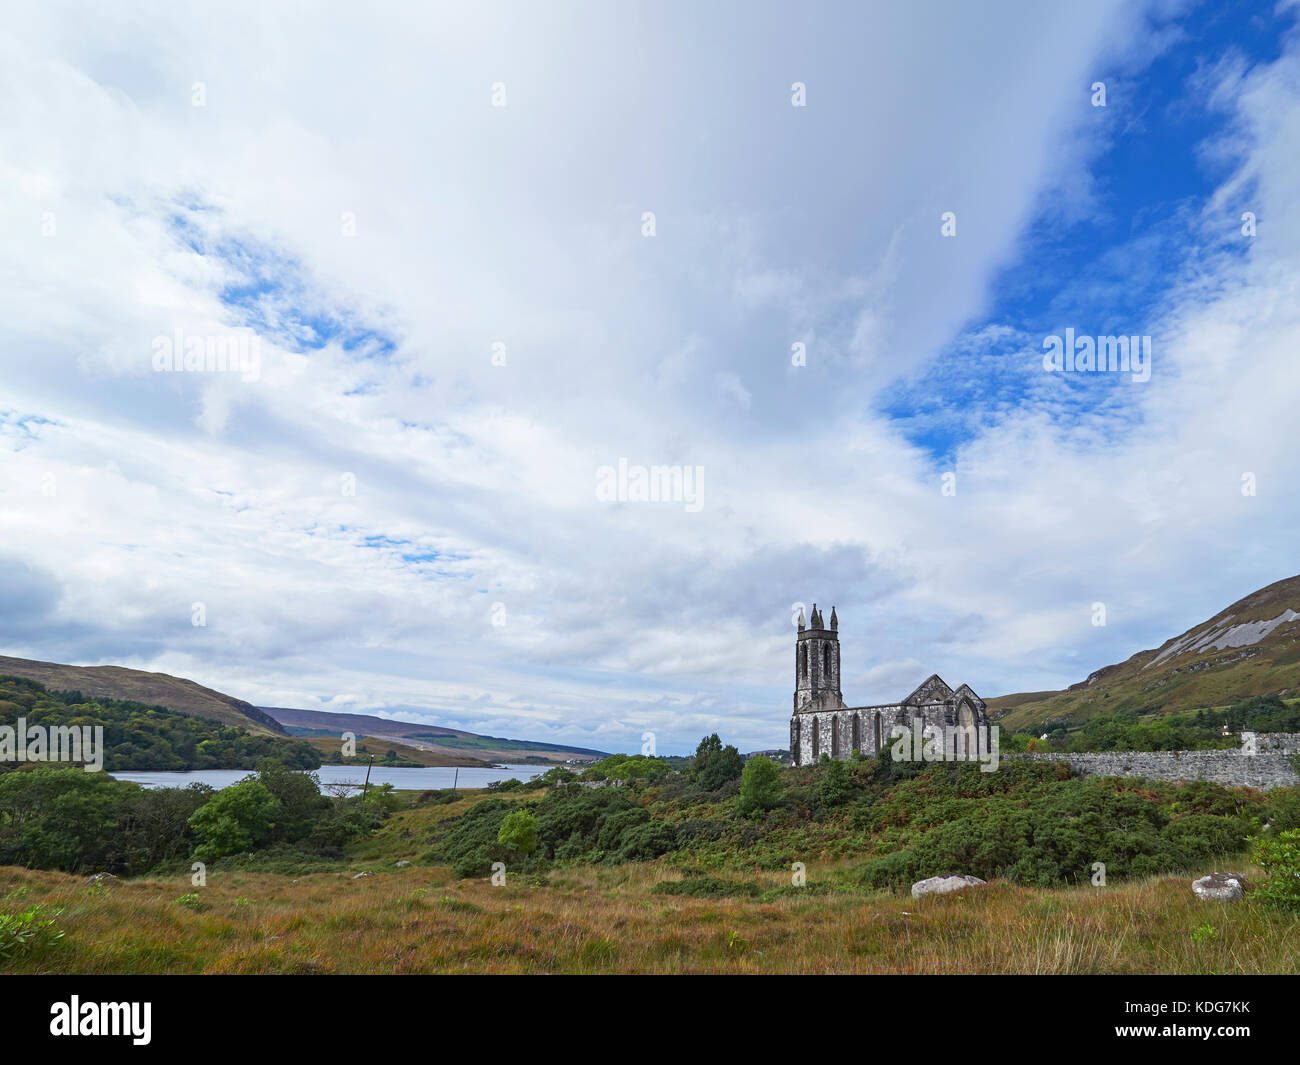 Dunlewey or Dunlewy ruined church at the foot of Mount Errigal and the Poisoned Glen county Donegal Ireland - Stock Image